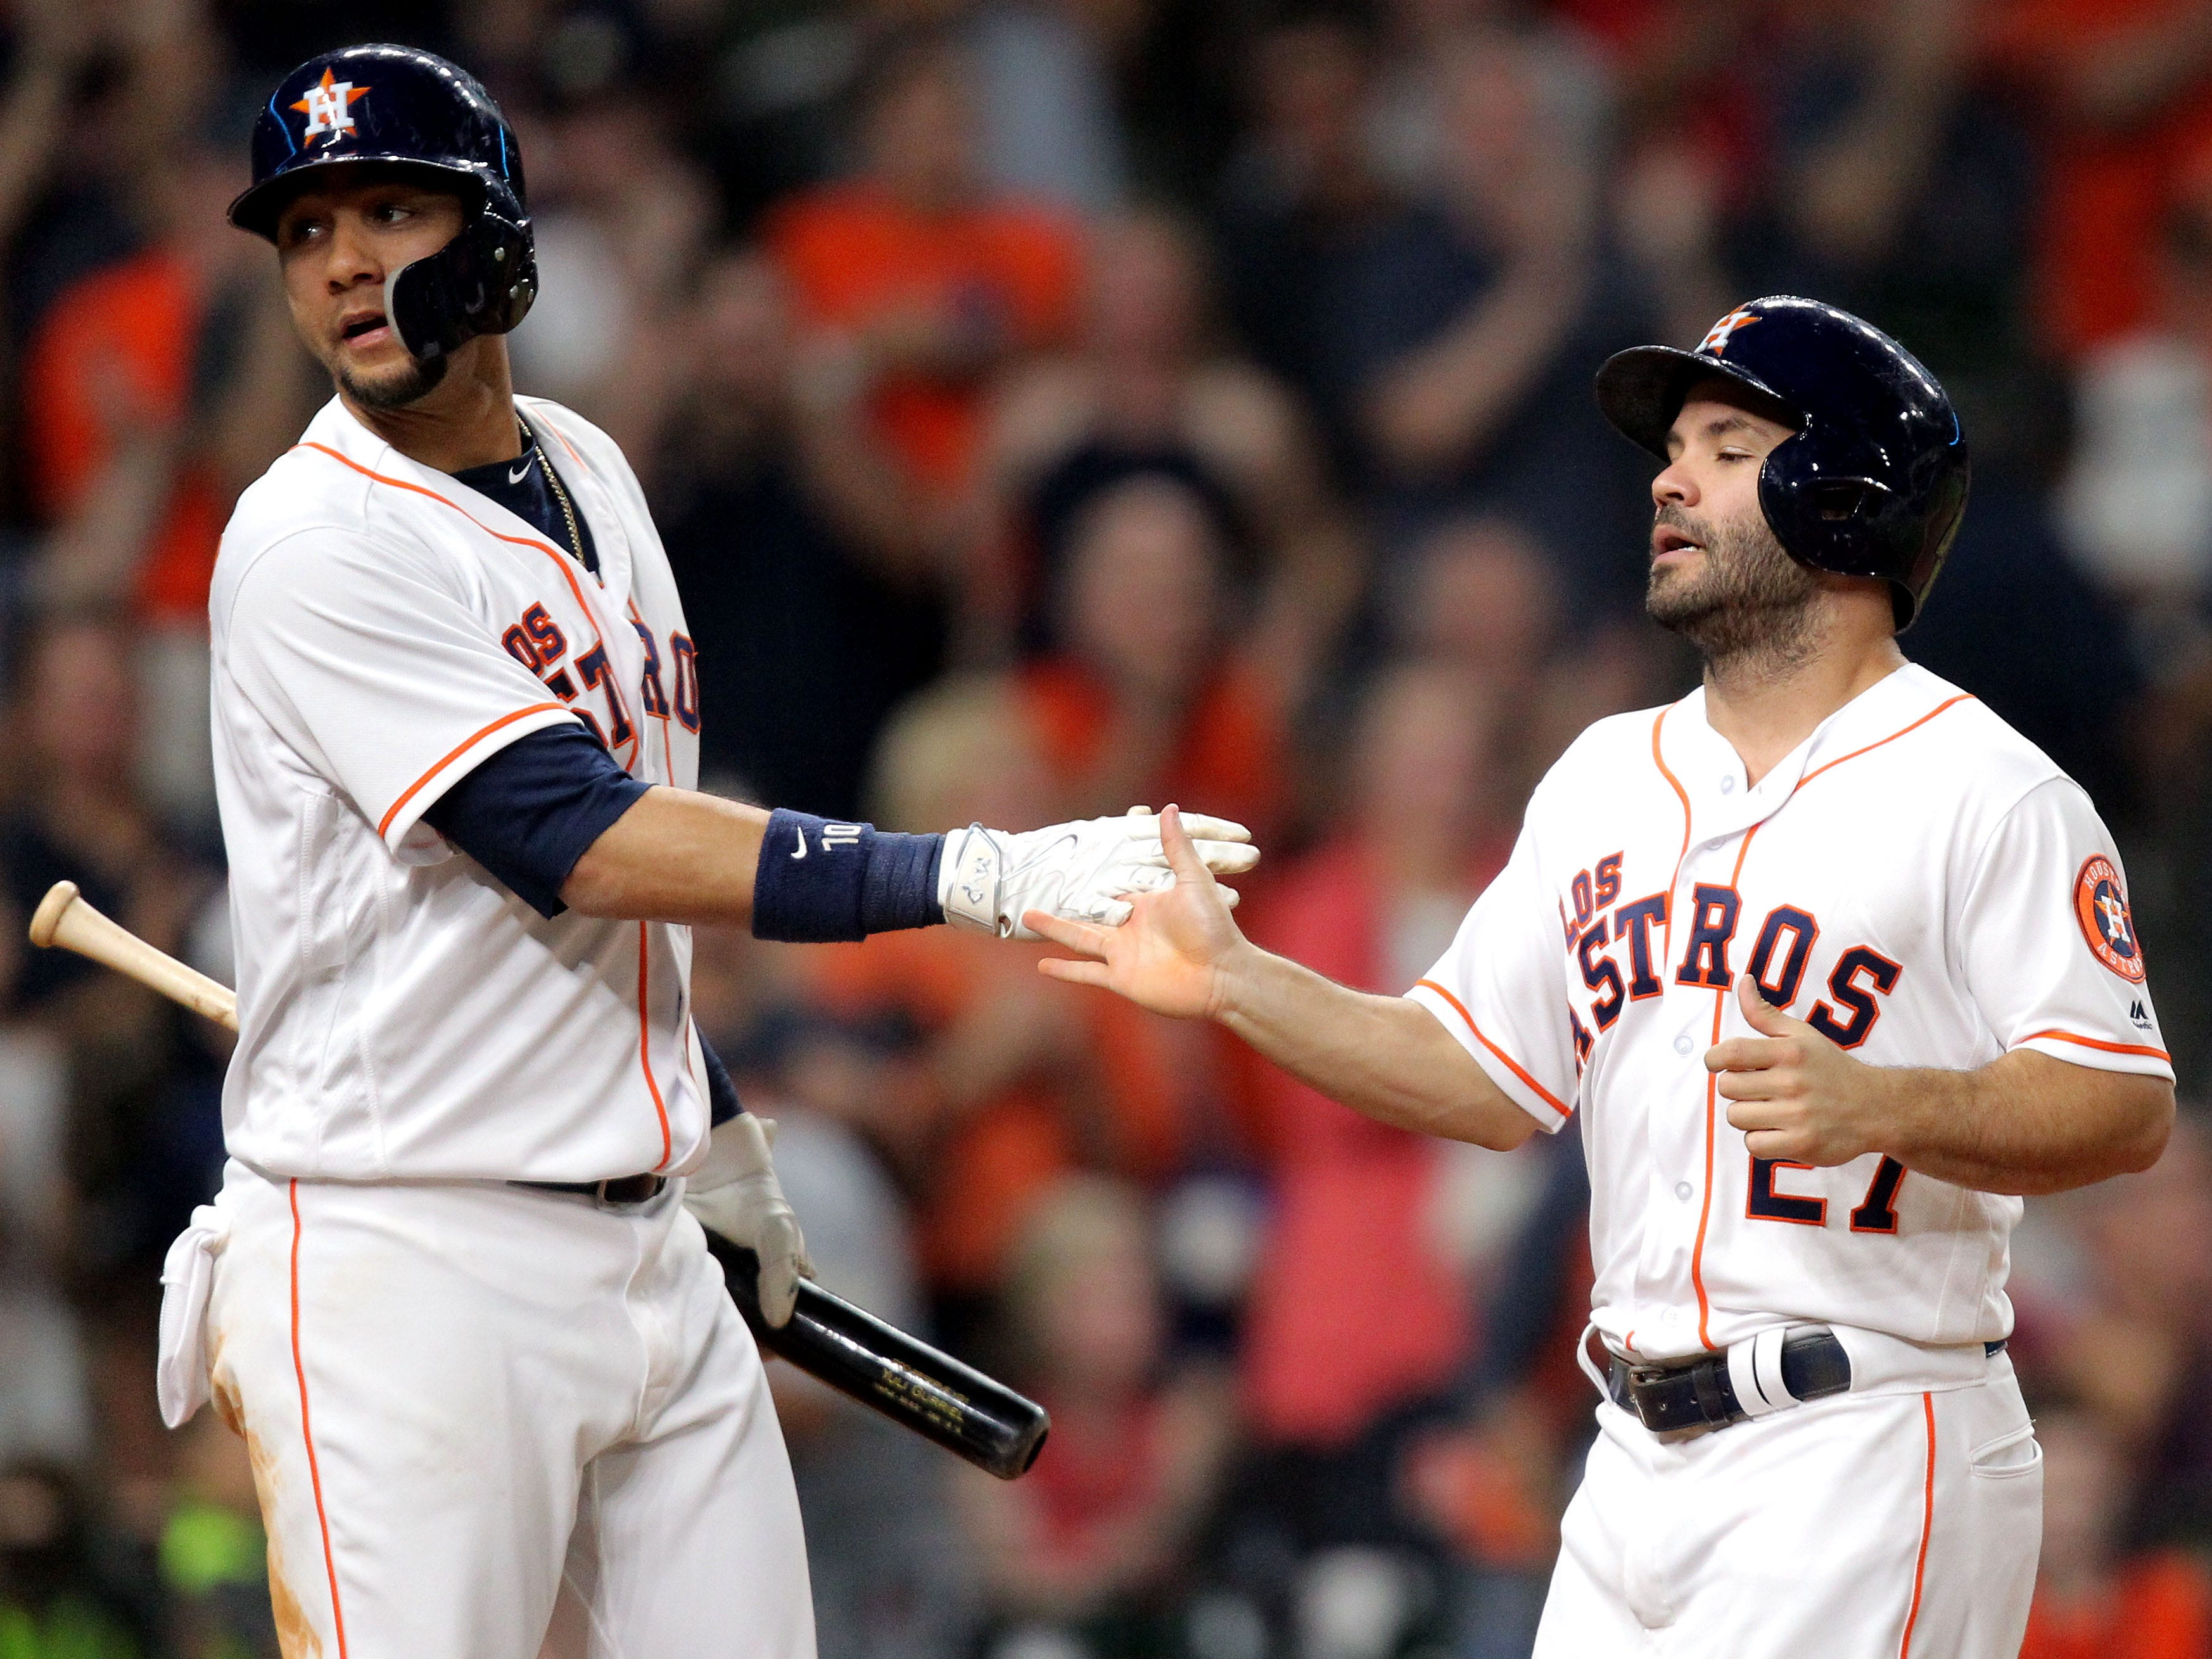 Sep 15, 2018; Houston, TX, USA; Houston Astros second baseman Jose Altuve (27, right) is congratulated by Houston Astros first baseman Yuli Gurriel (10) after scoring a run against the Arizona Diamondbacks during the fourth inning at Minute Maid Park. Mandatory Credit: Erik Williams-USA TODAY Sports